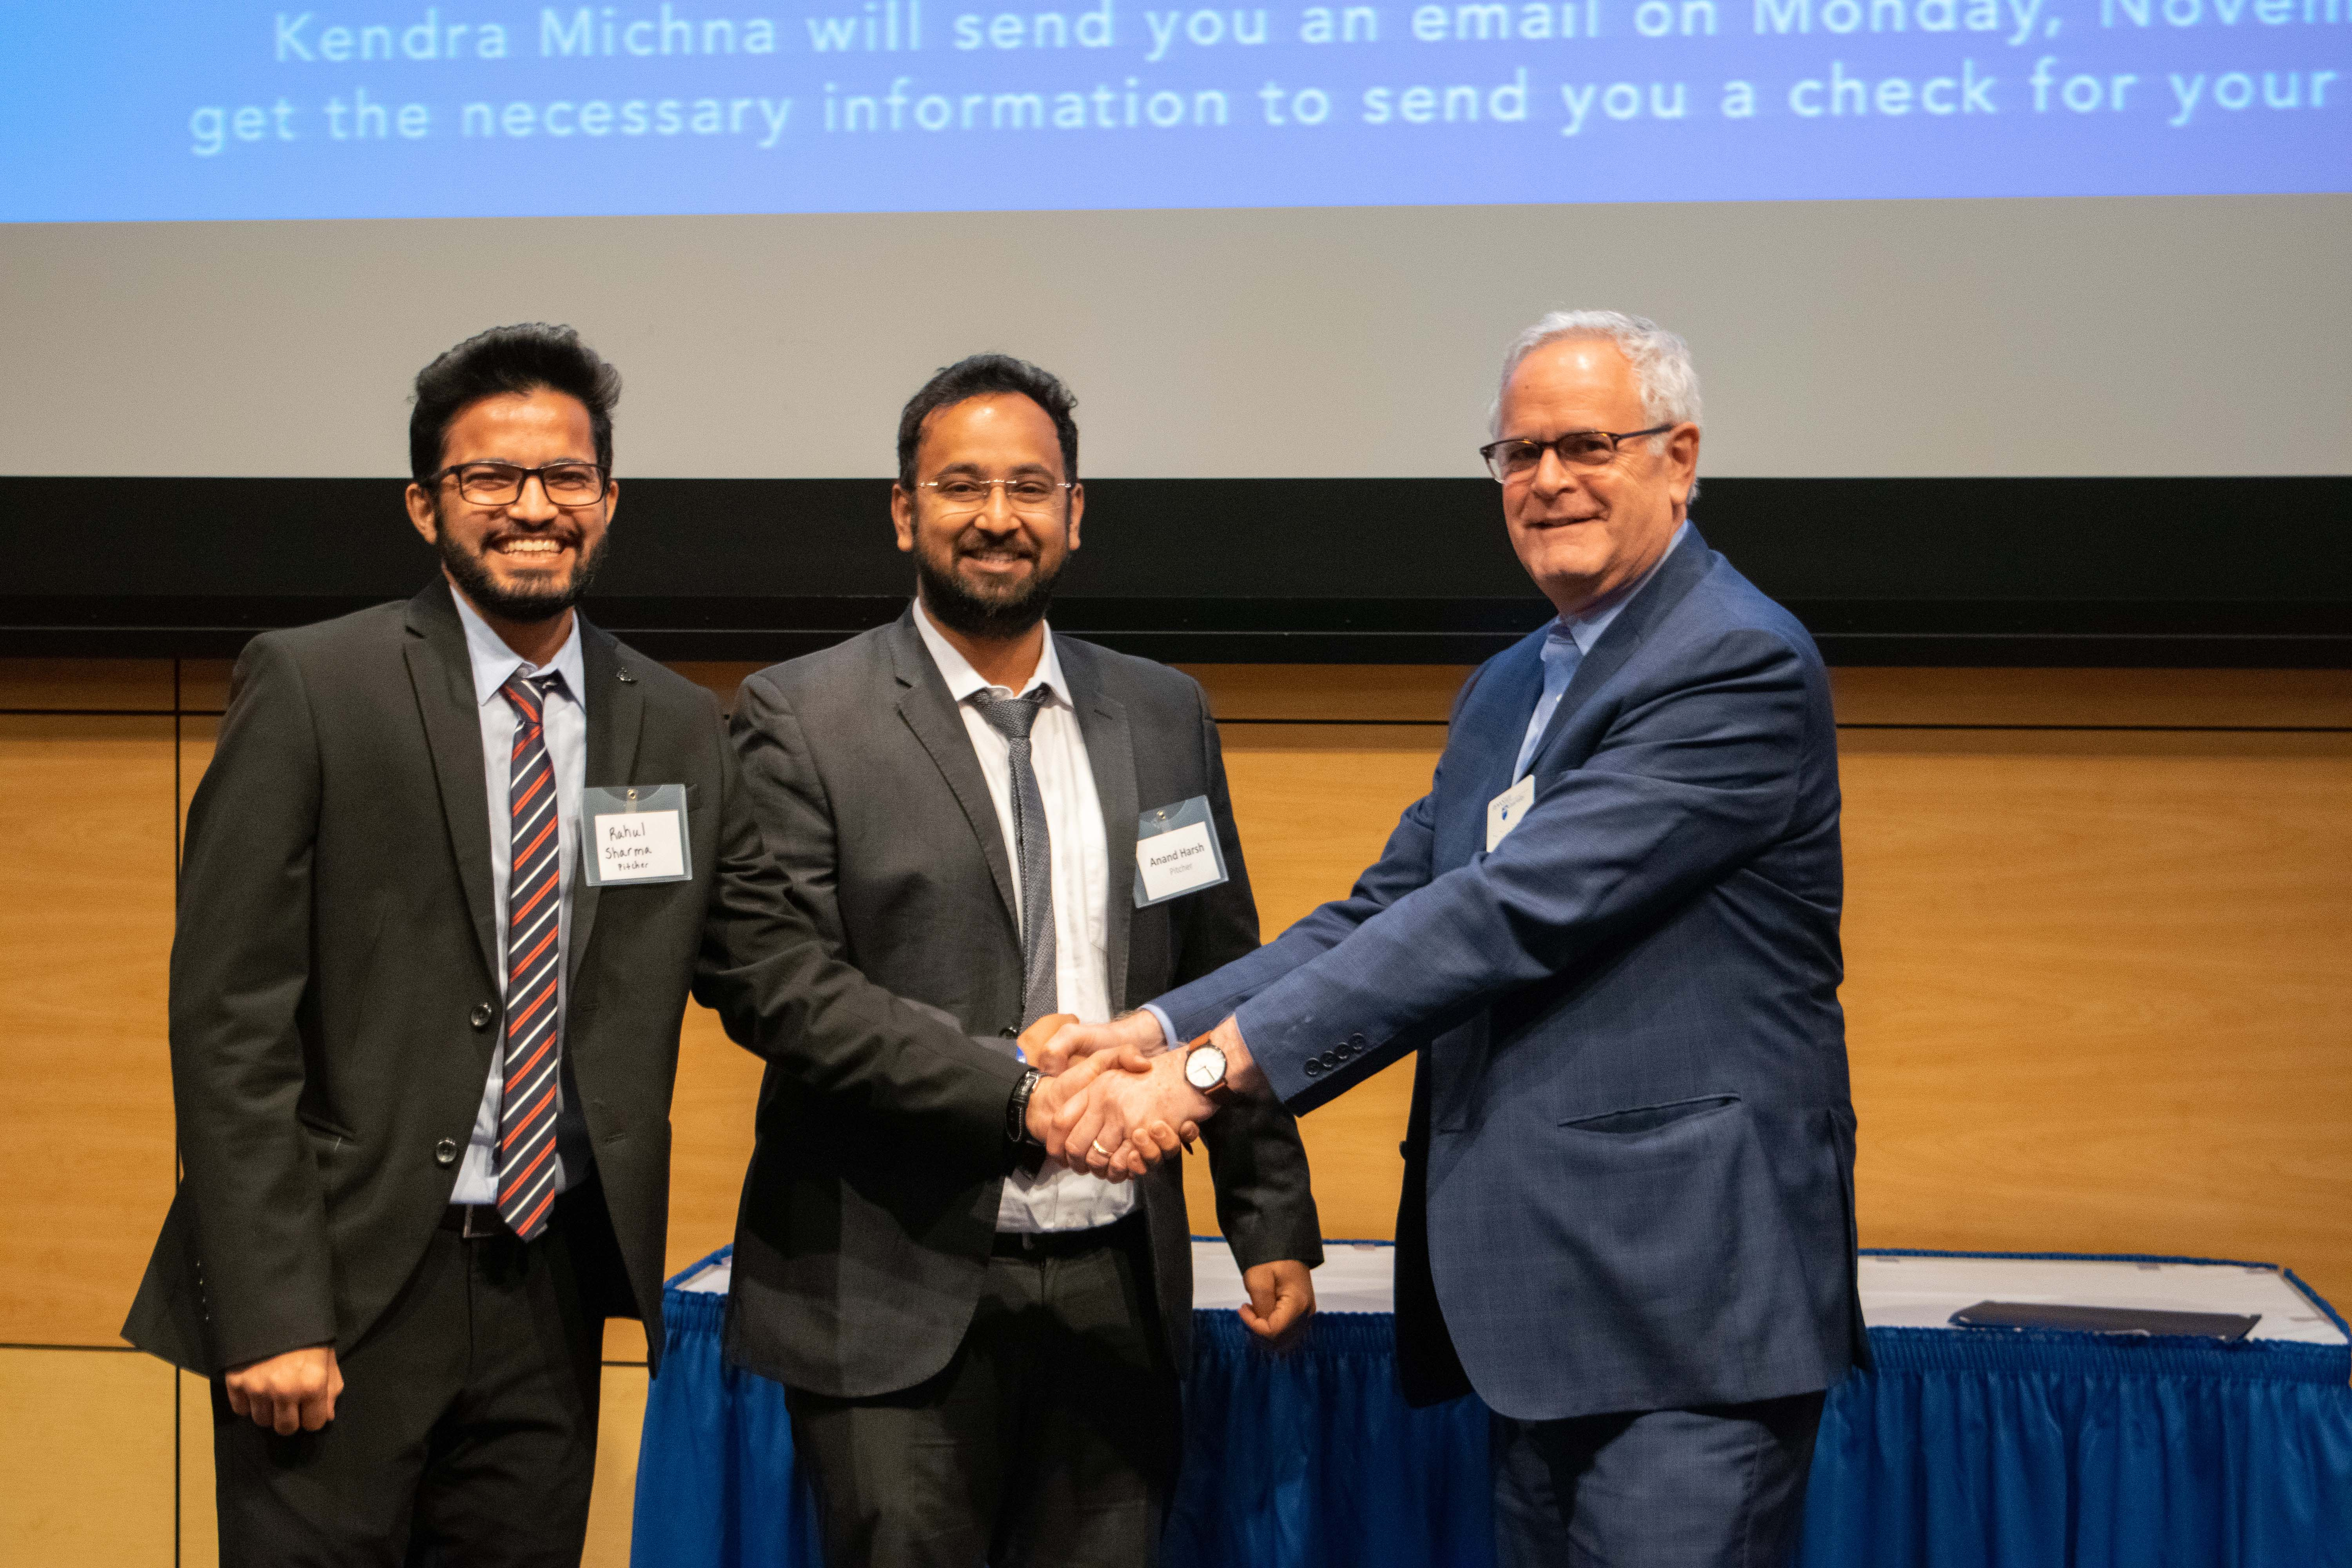 Doug Schumer presenting Rahul Sharma and Harsh Anand with their award